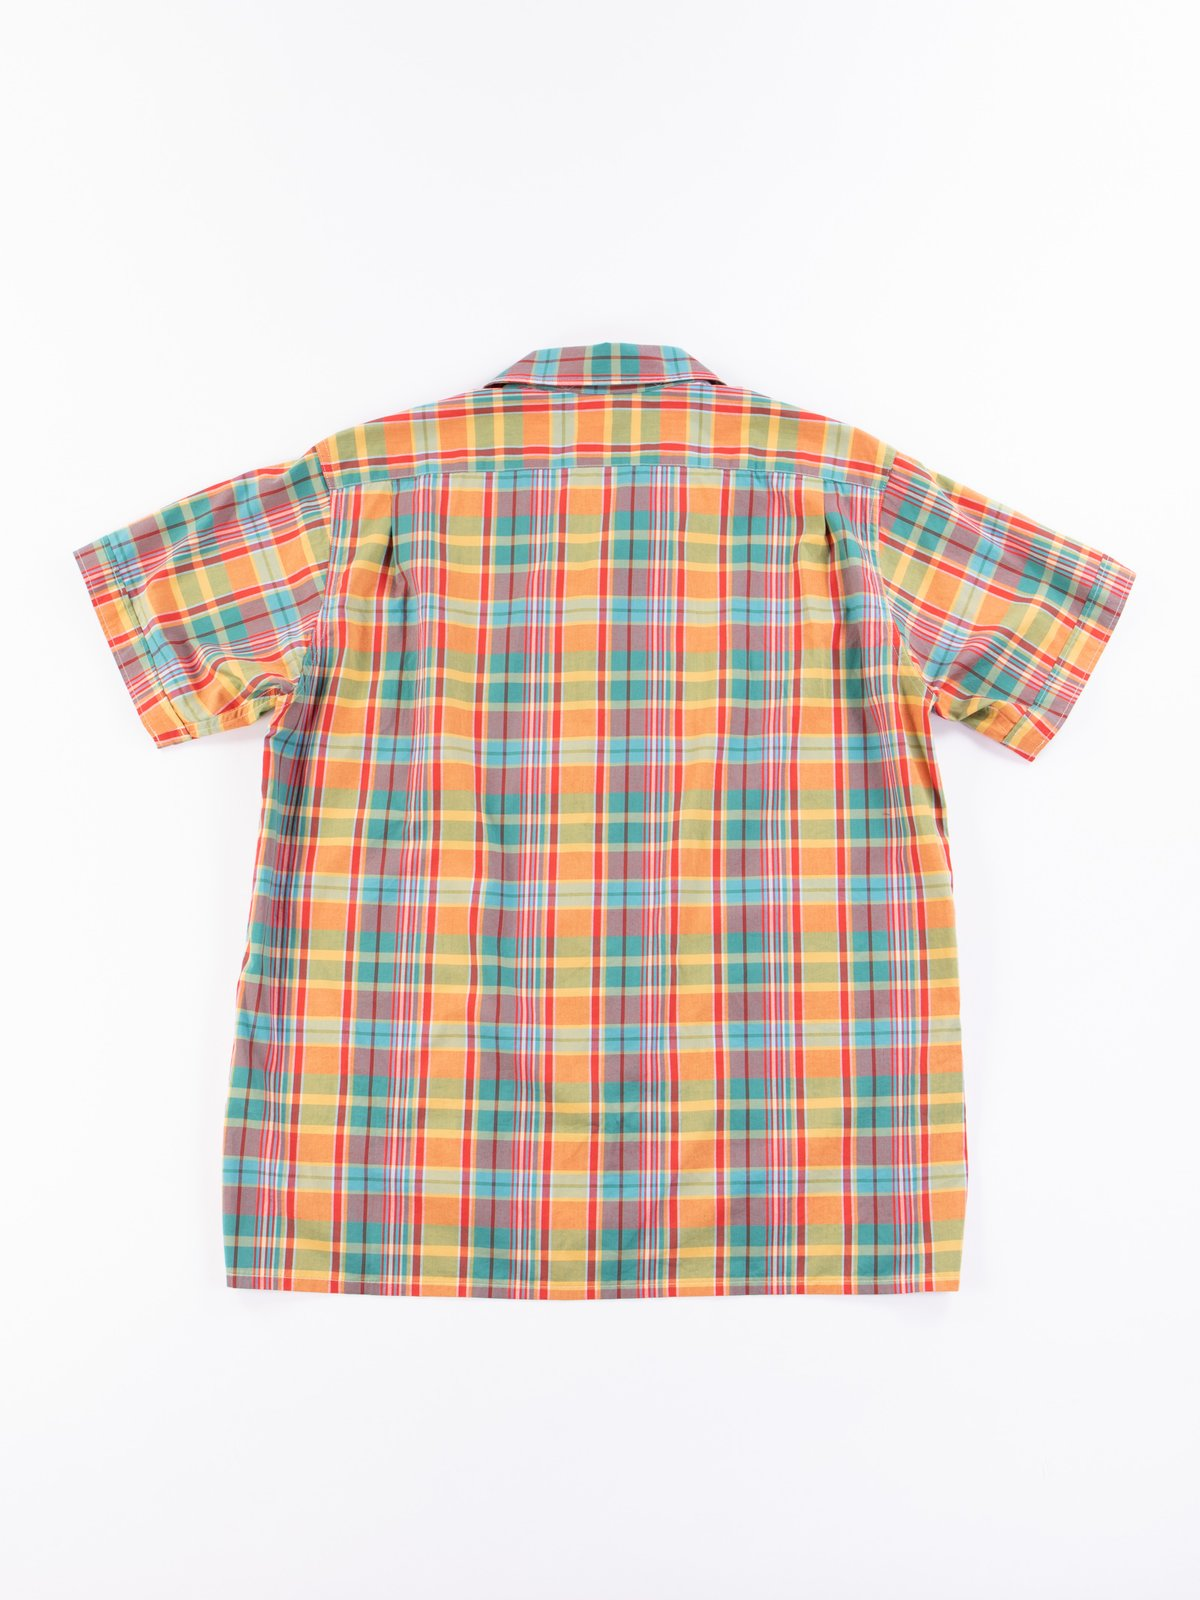 Orange Plaid Cotton Broadcloth Camp Shirt - Image 7